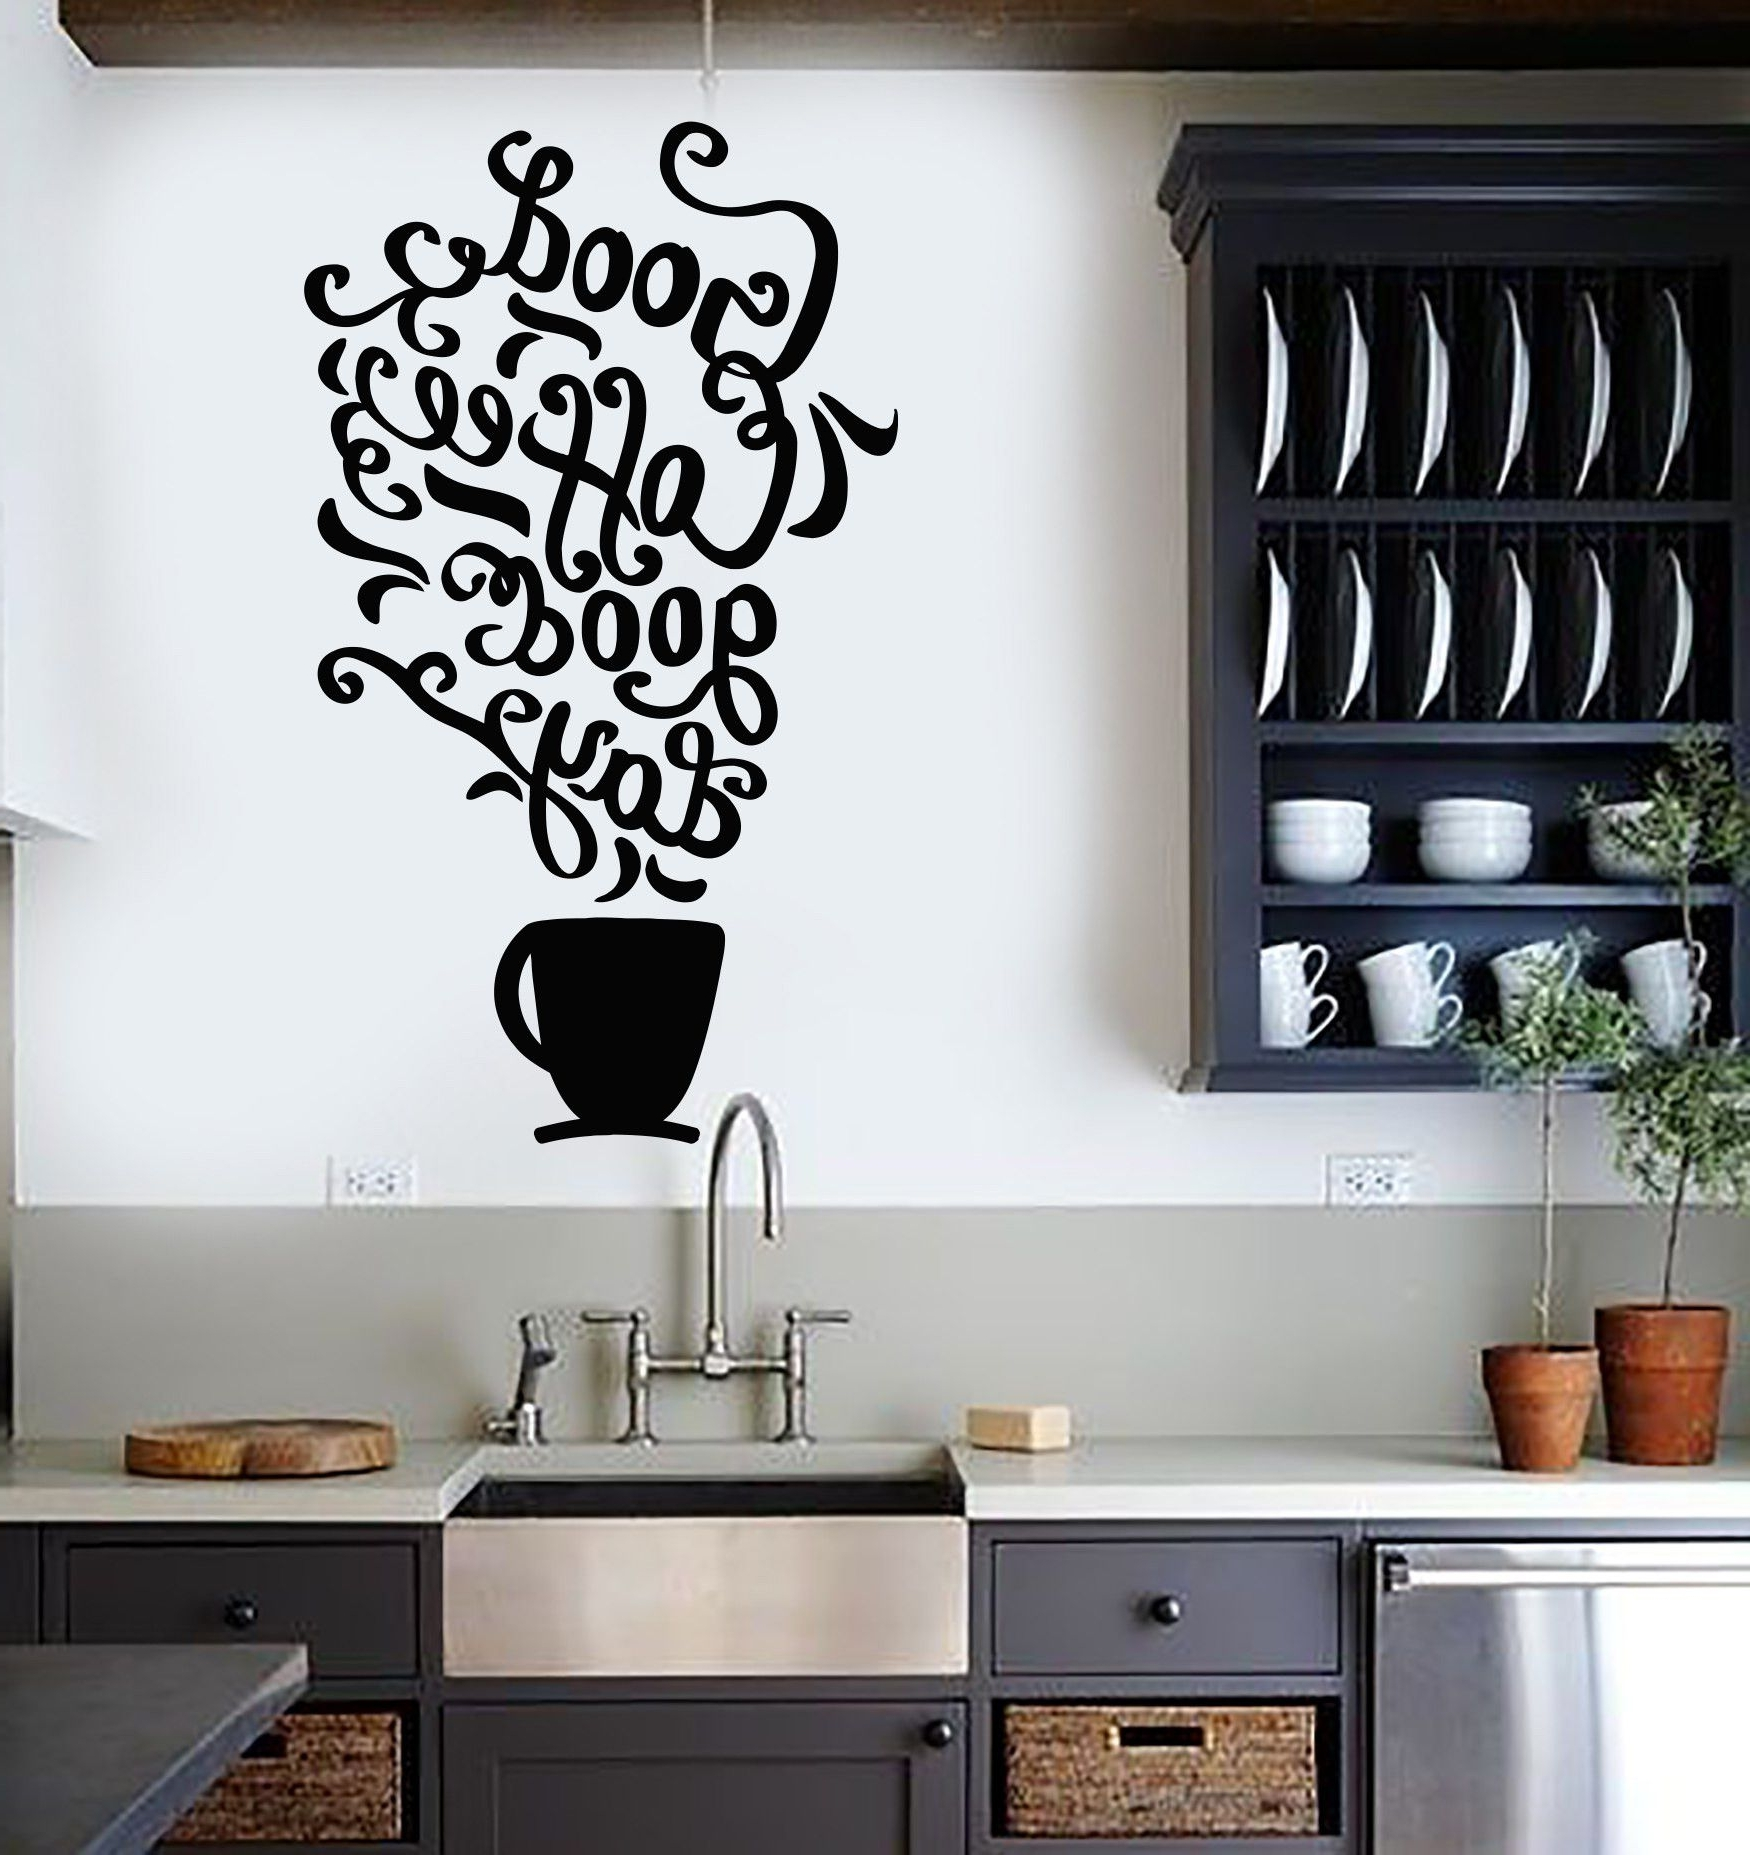 Vinyl Wall Decal Quote Coffee Kitchen Shop Restaurant Cafe Art Regarding Most Current Paris Vinyl Wall Art (Gallery 12 of 15)